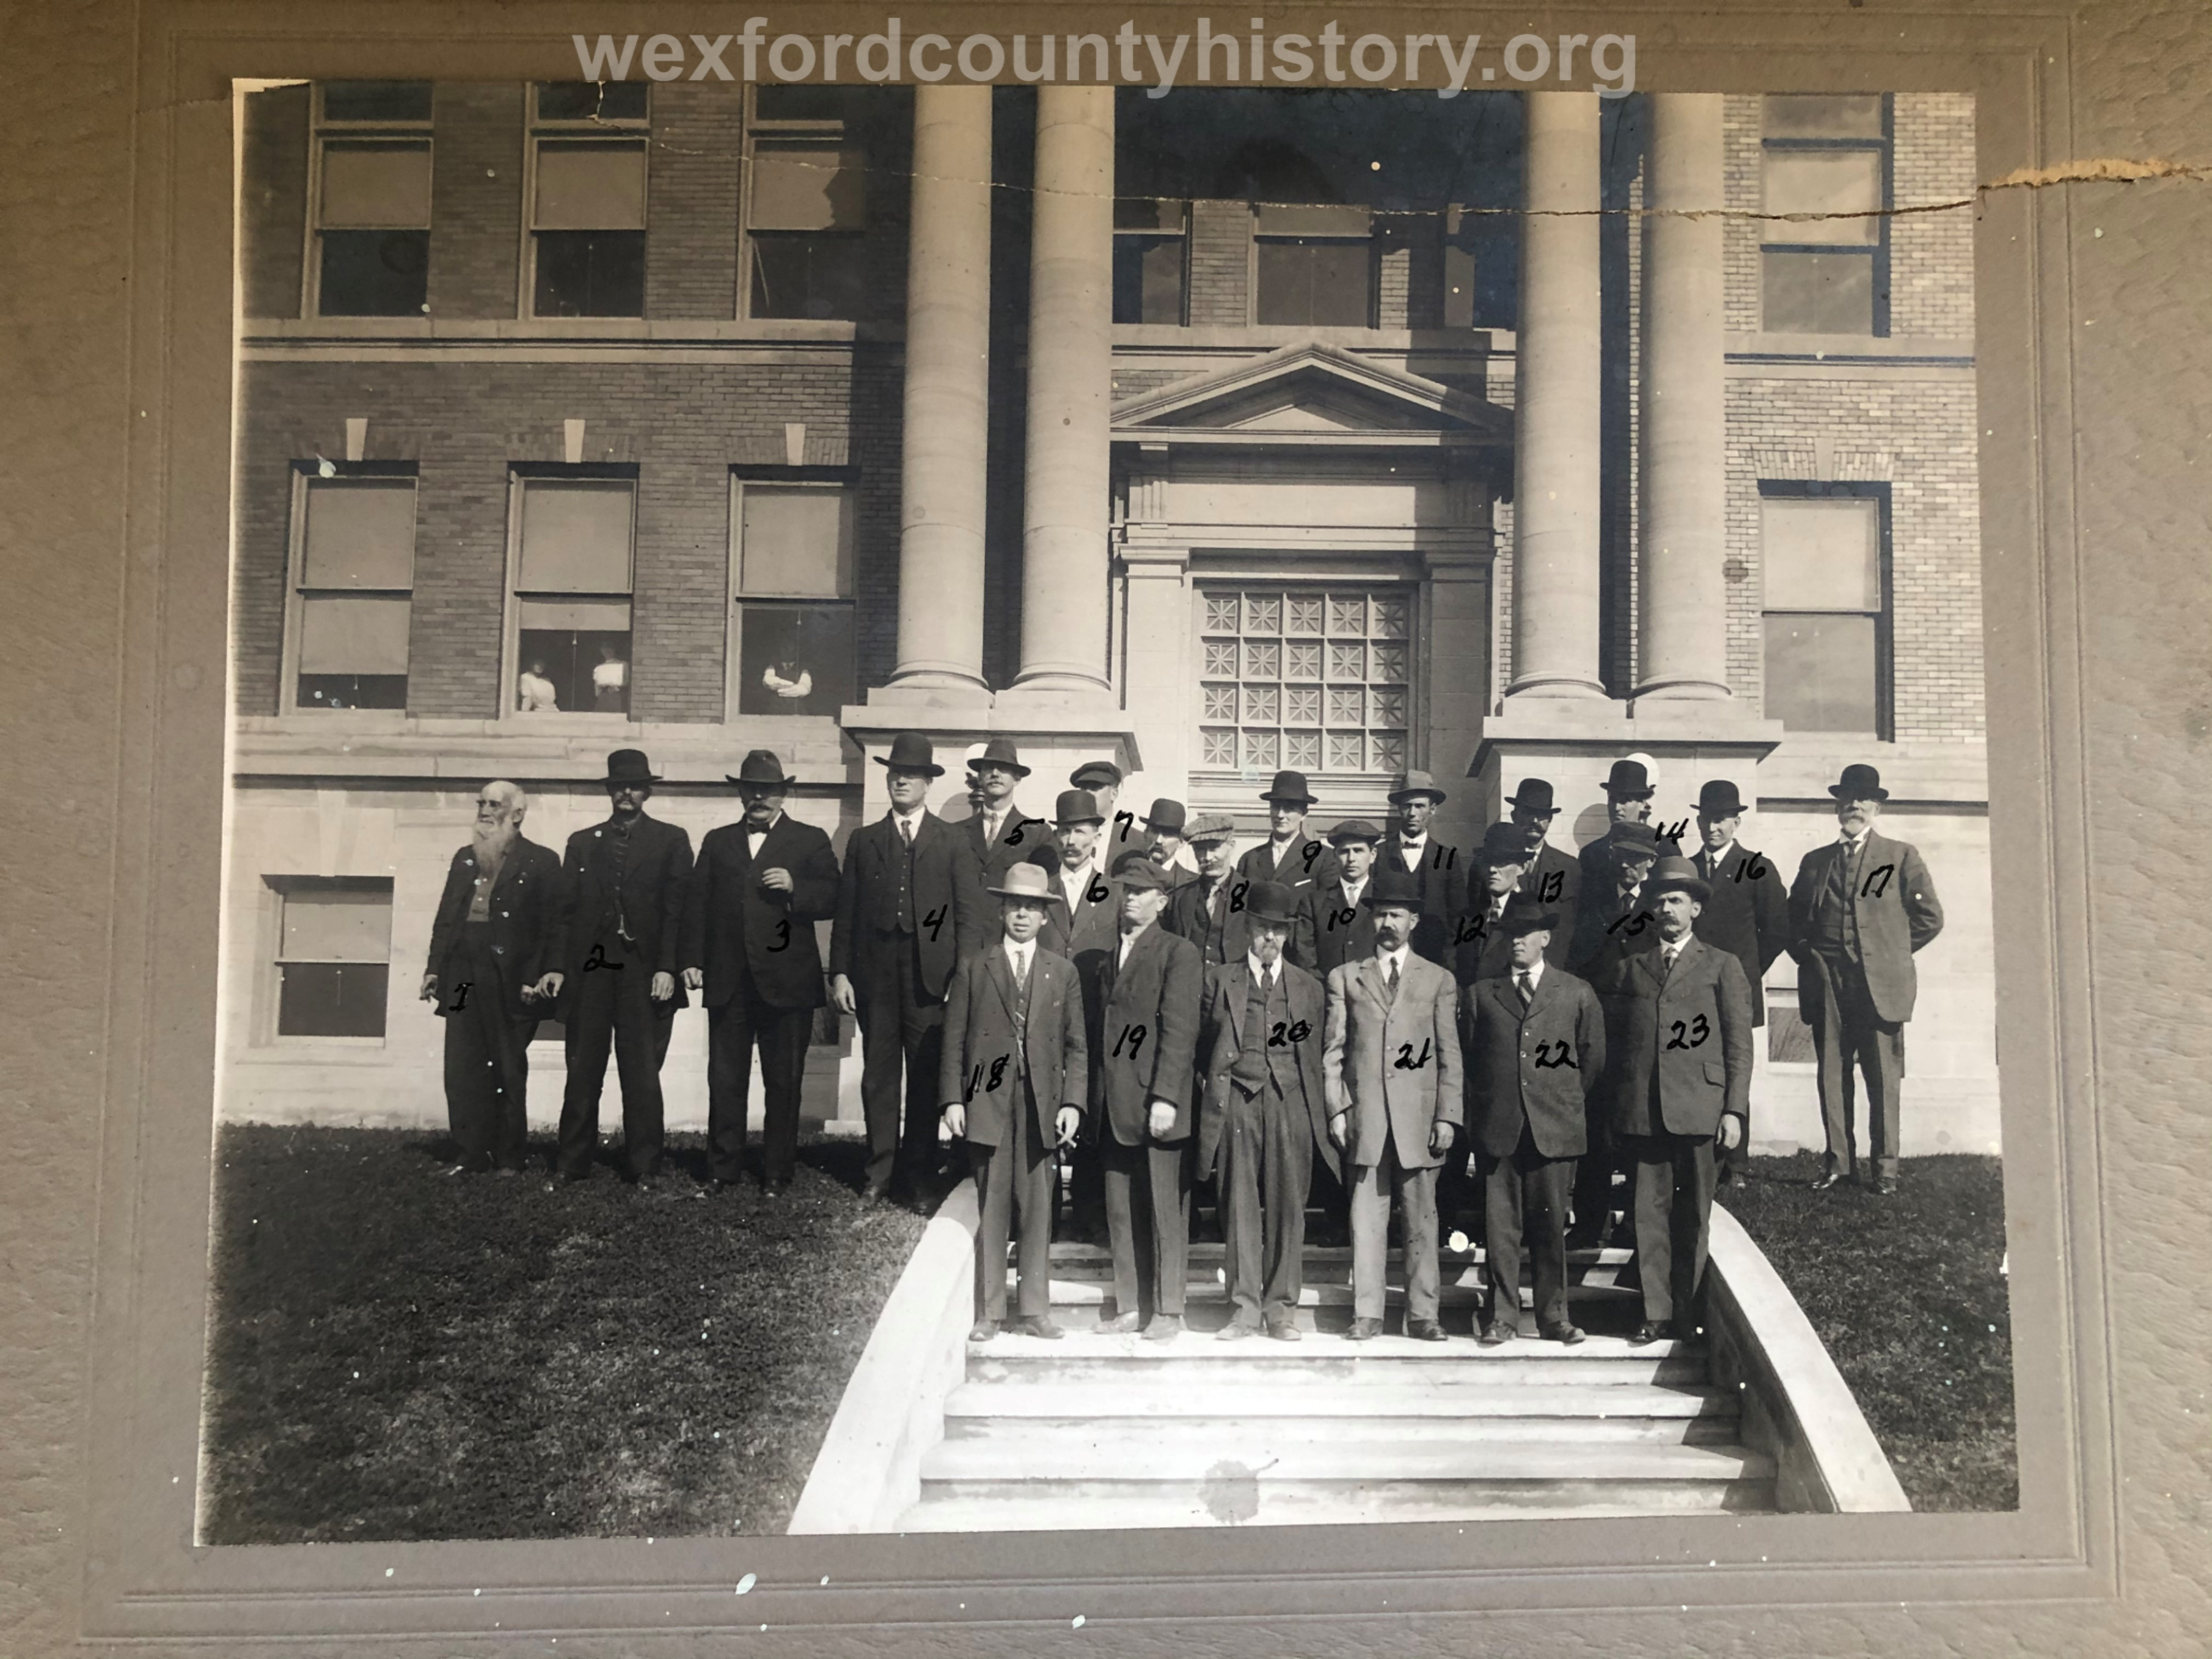 Wexford County Board Of Supervisors, c. 1930